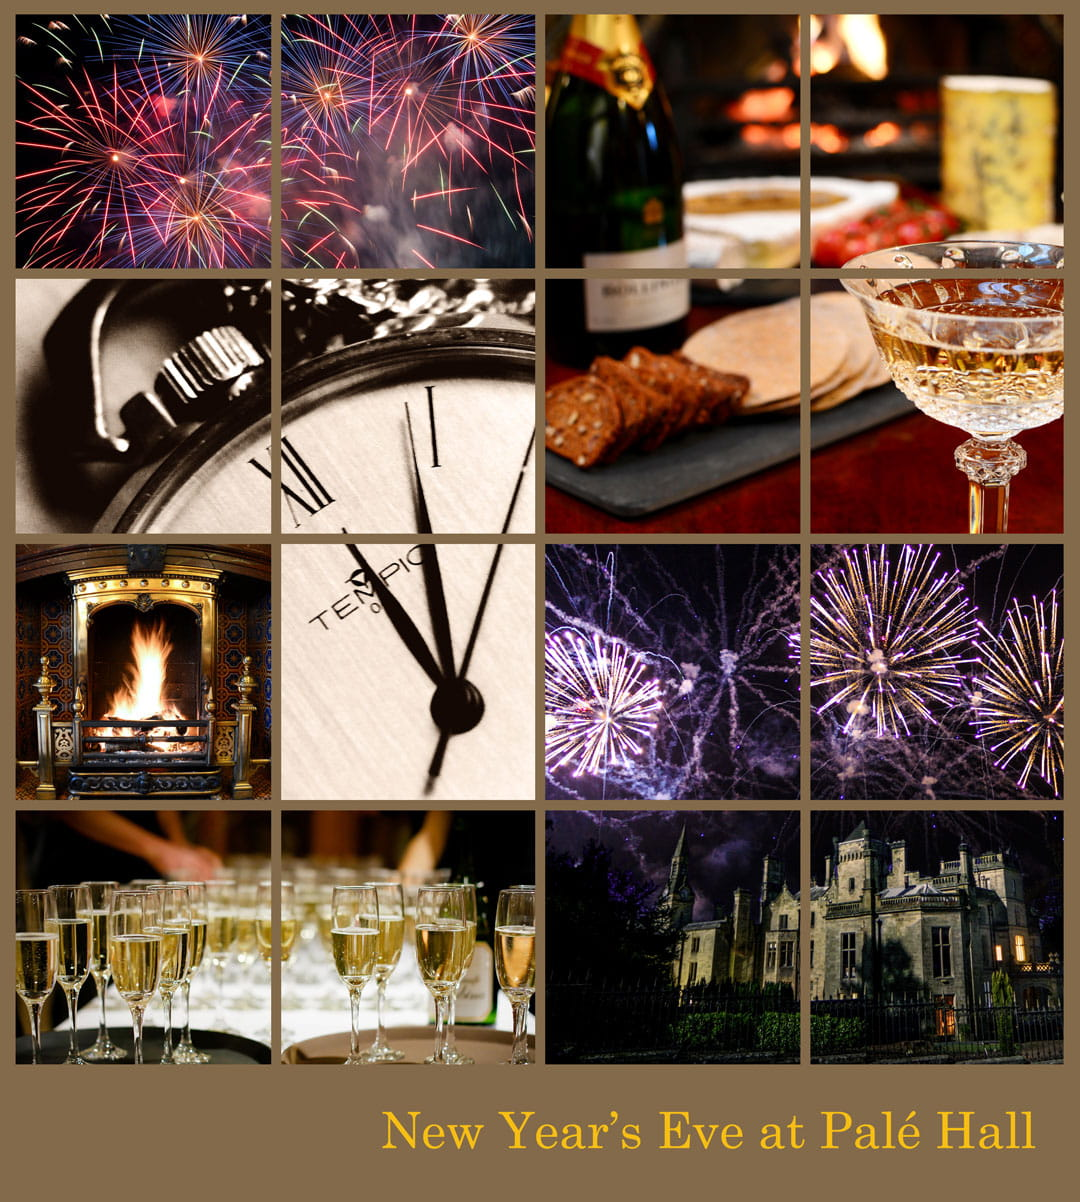 Denver New Years Fireworks6 By Niel4: Palé Hall Hotel